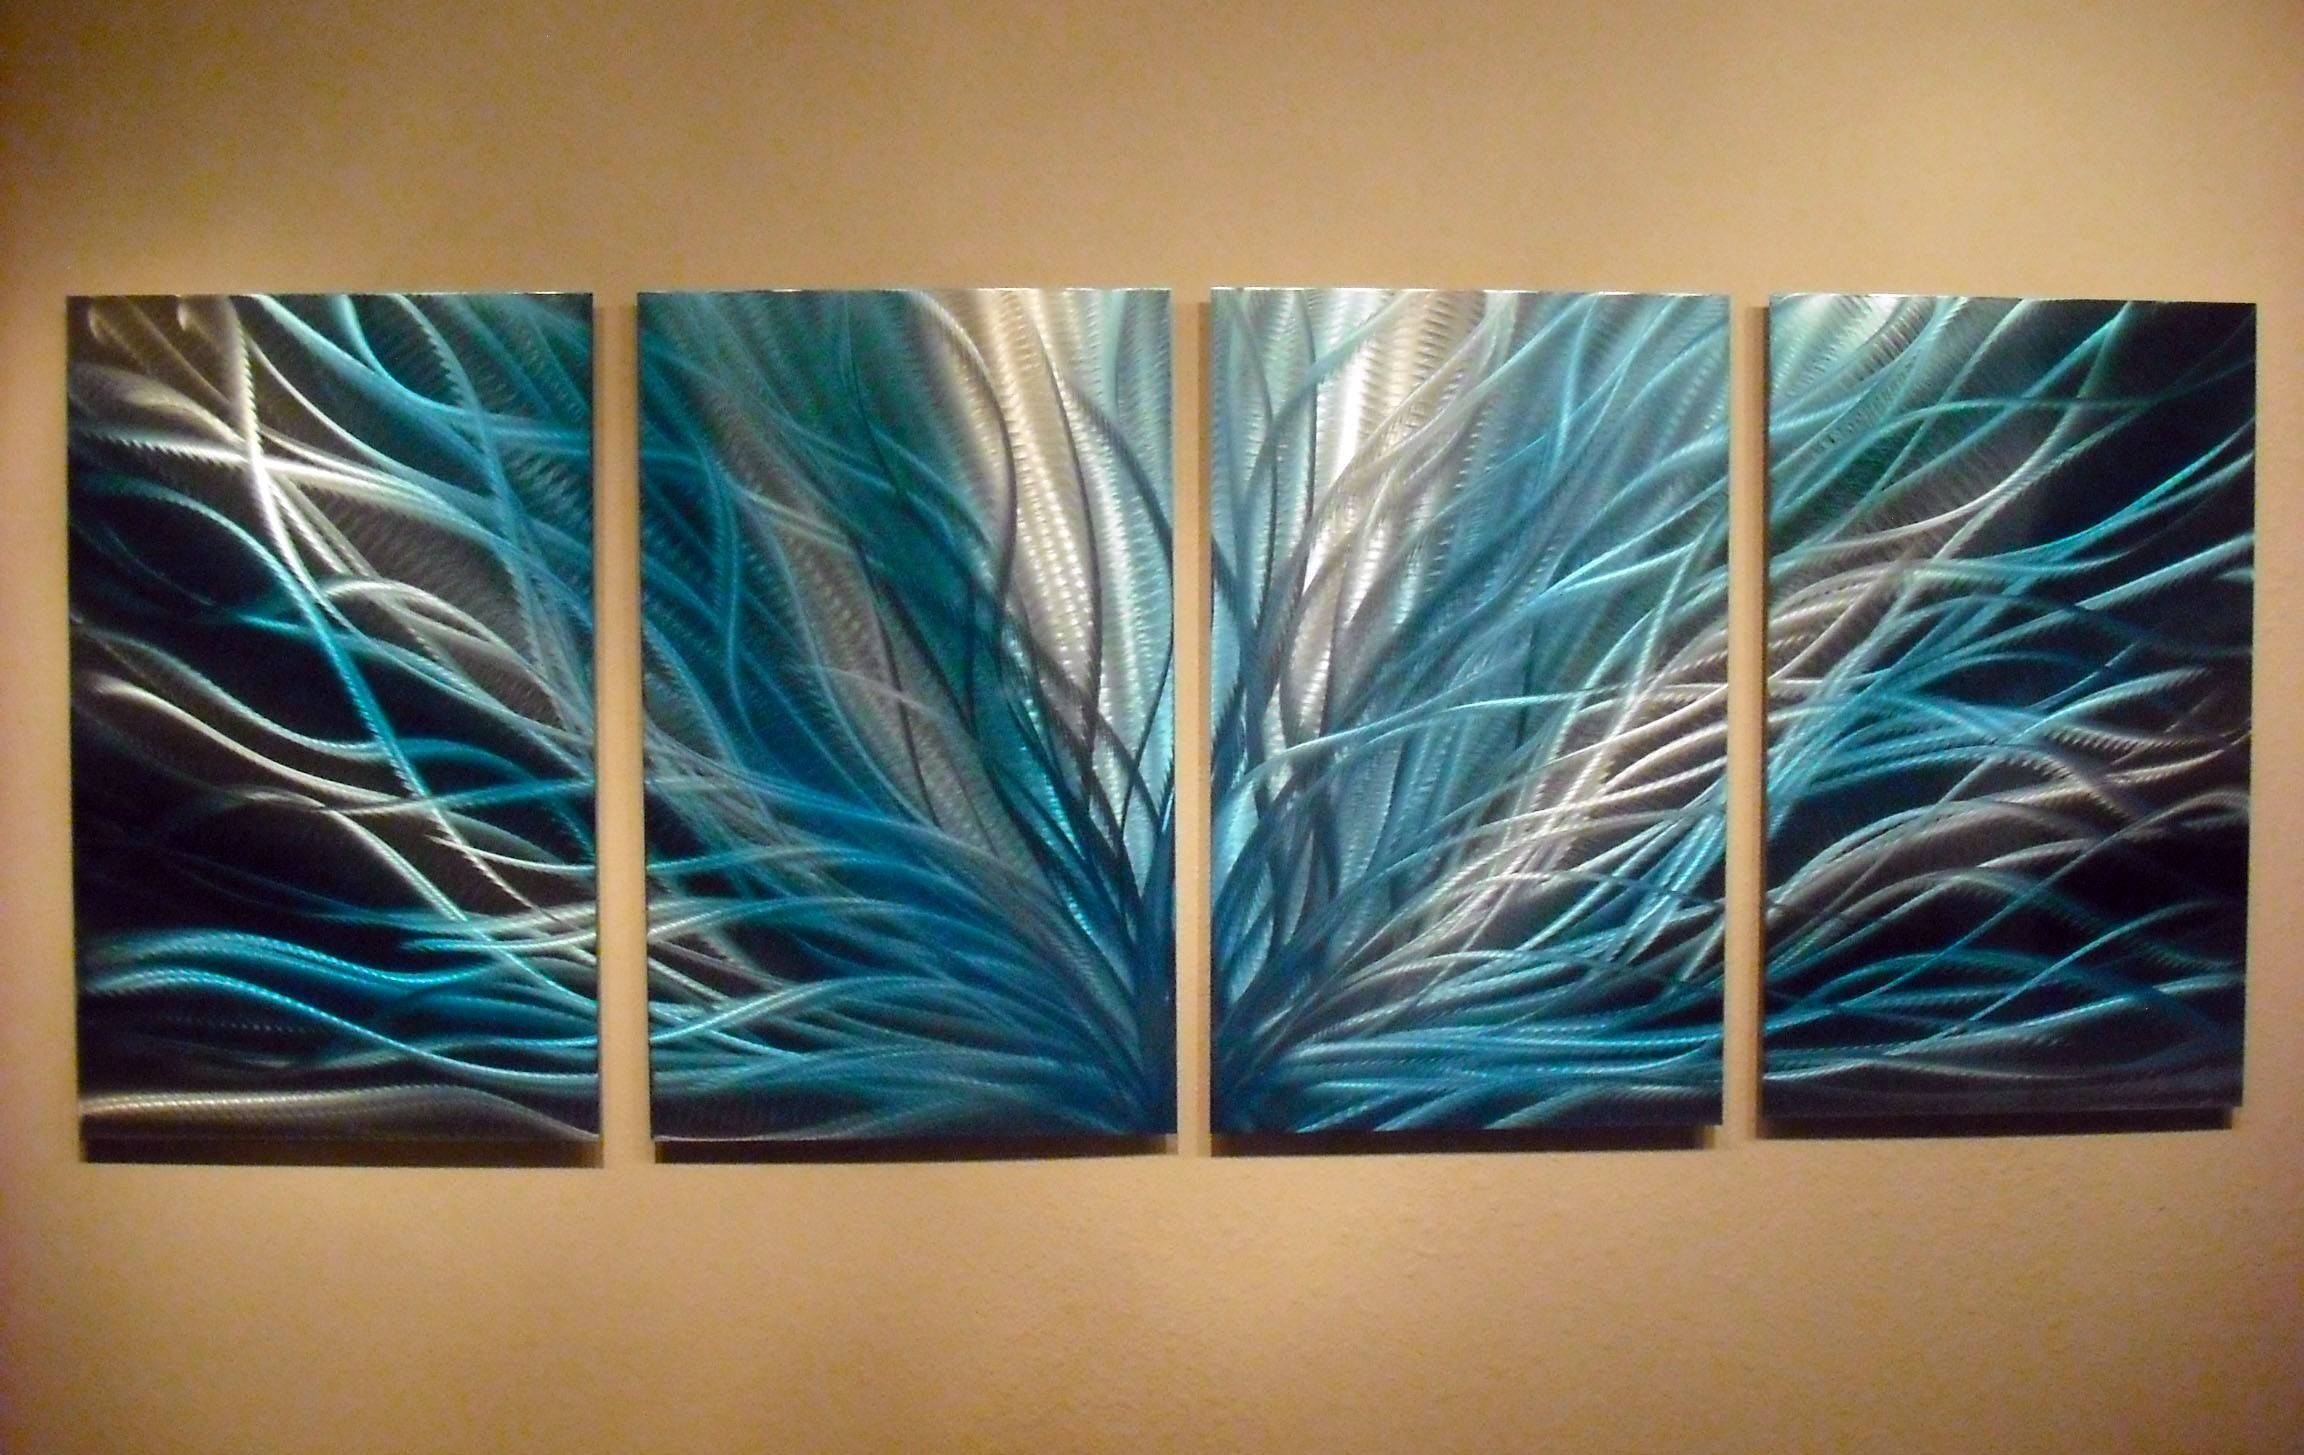 Radiance In Blues Abstract Metal Wall Art Contemporary Modern With Regard To 2017 Teal Metal Wall Art (Gallery 1 of 20)